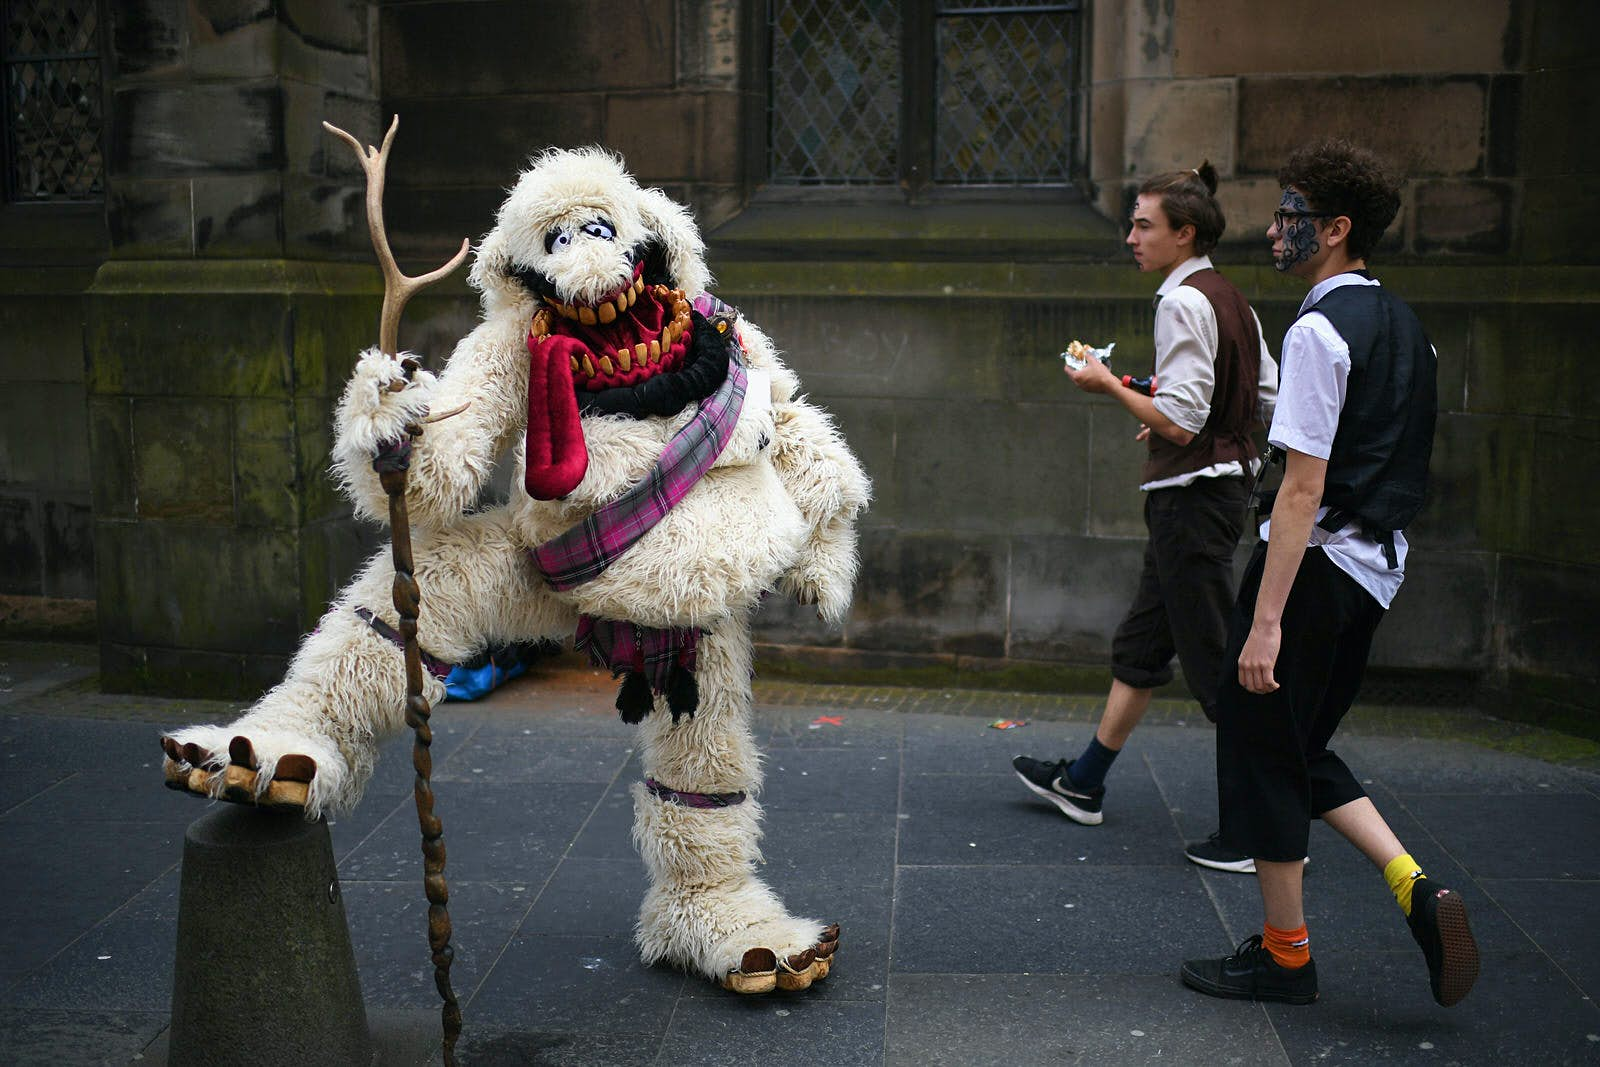 Edinburgh Festival Fringe entertainers perform on the Royal Mile. A person in an oversized white yeti costume with a tartan sash and holding a staff props their leg up on a bollard while two men walk by.